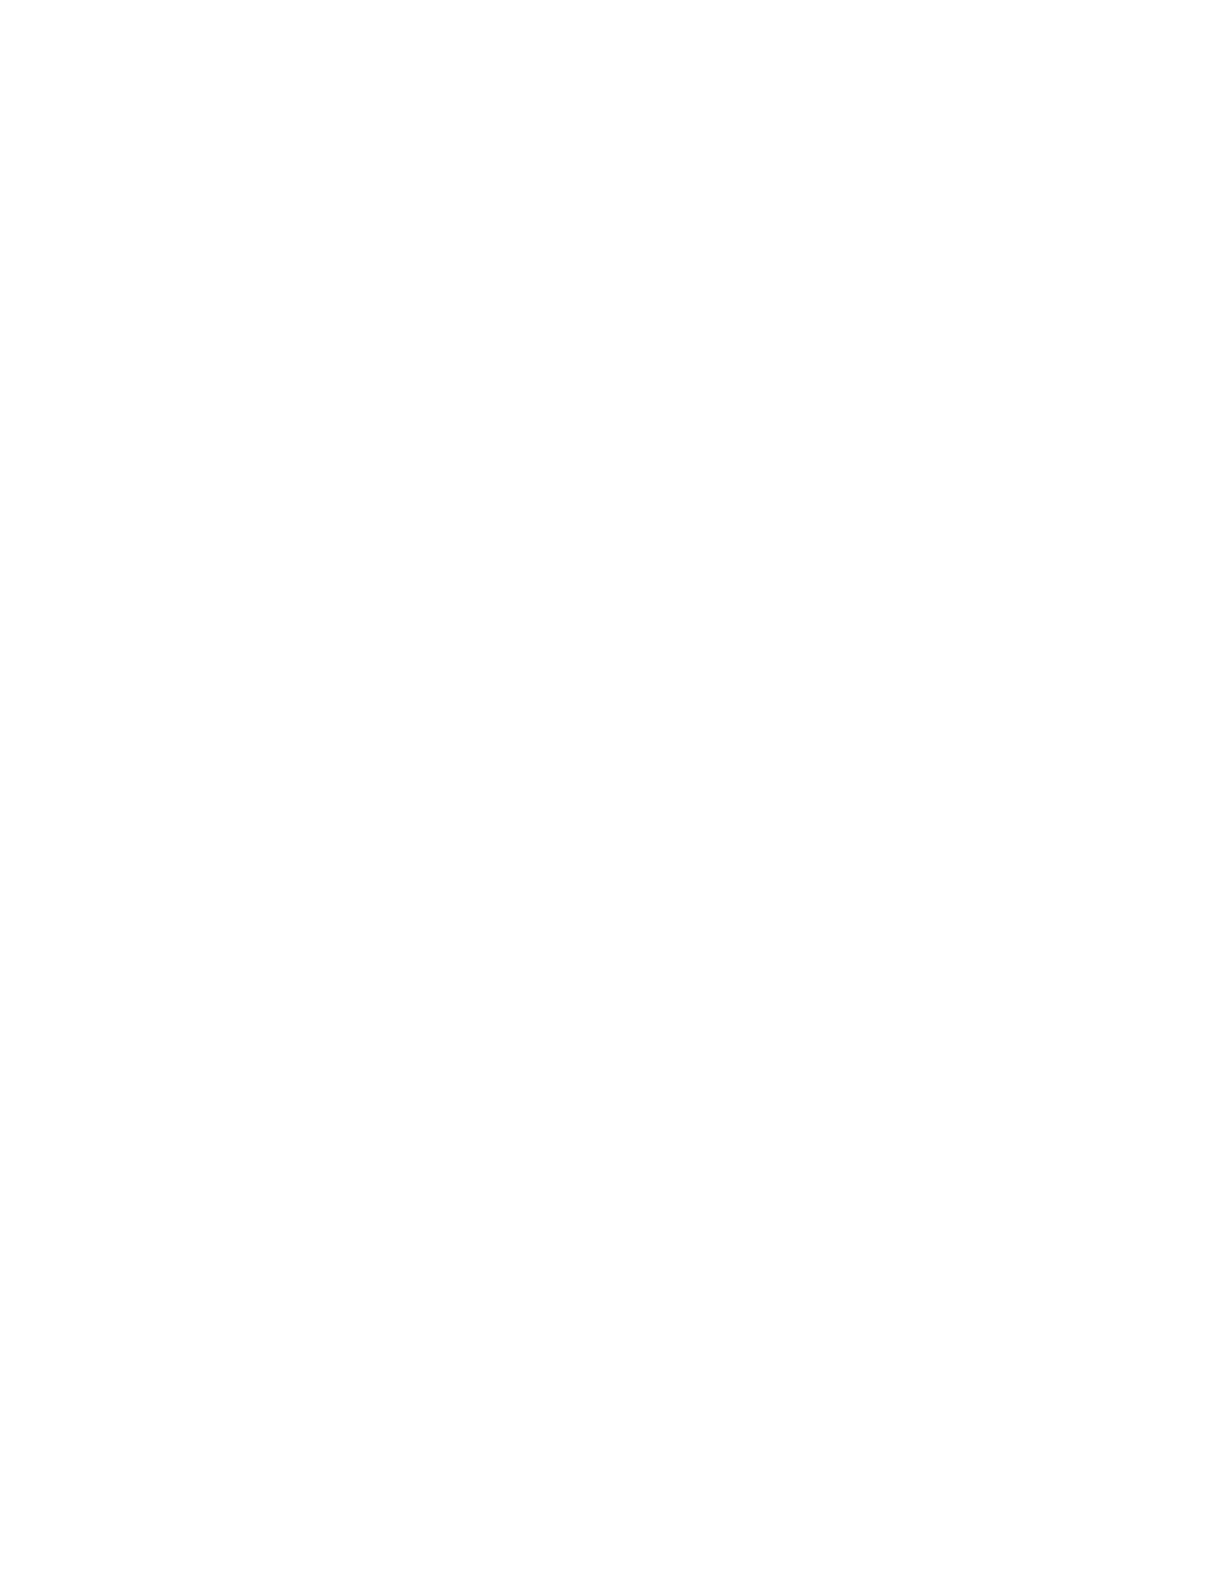 Taishoff Family Foundation logo